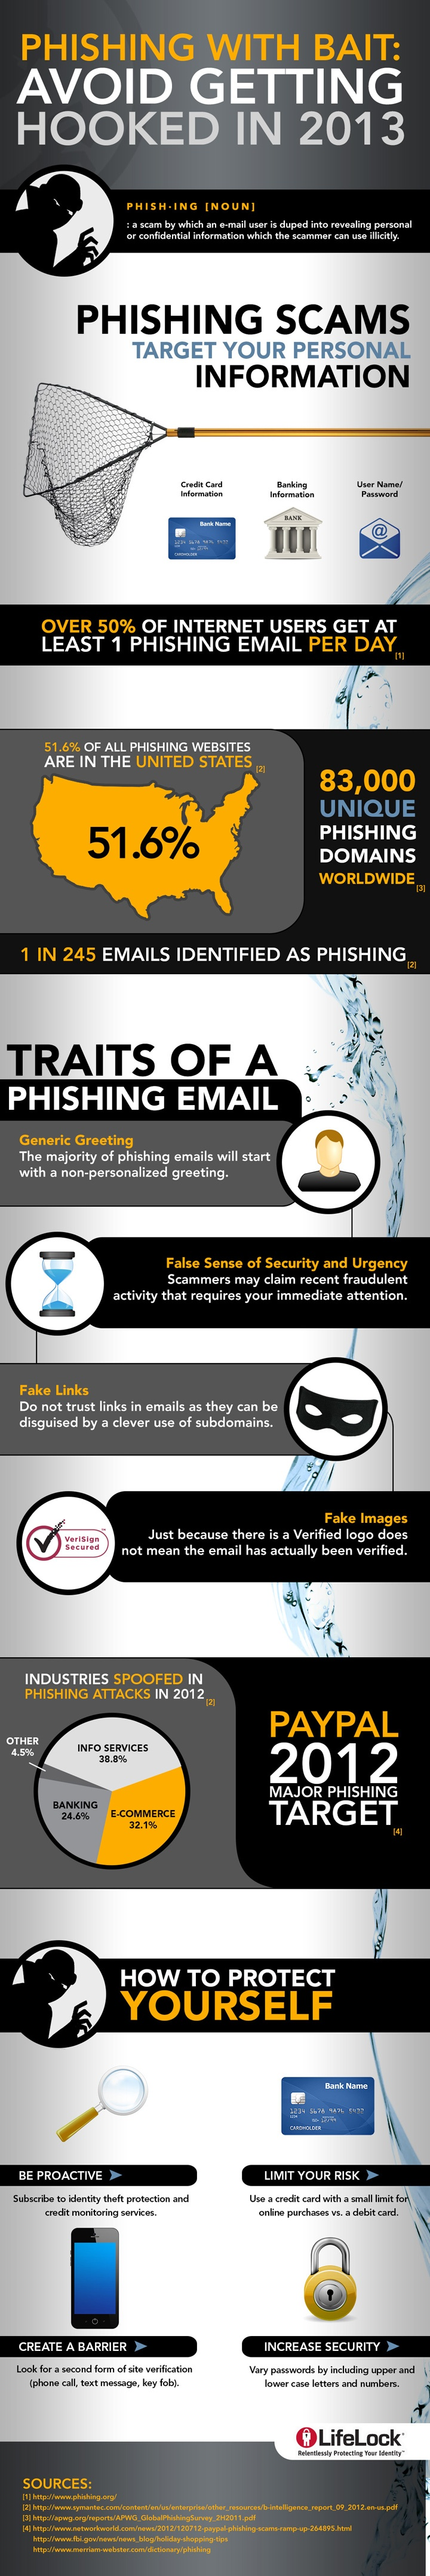 infographic-phishing